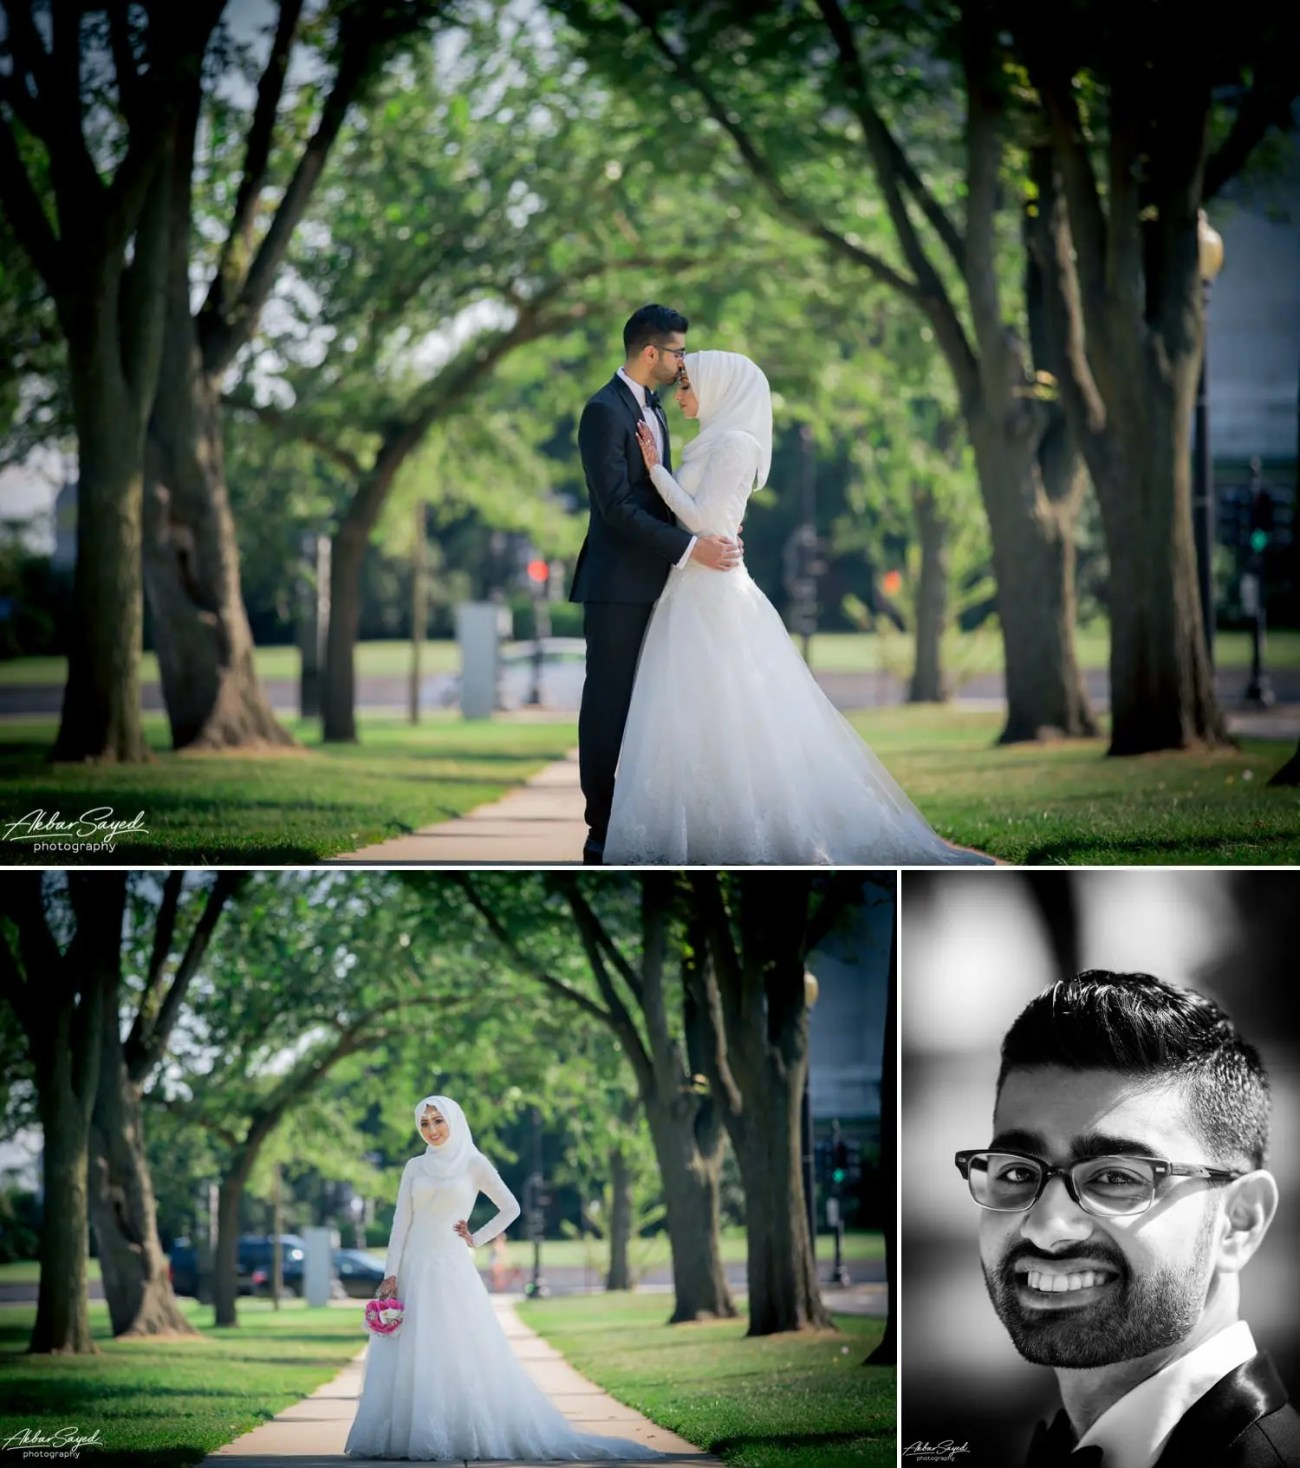 Asad and Sehar - National Mall Bridal Party Portraits 9